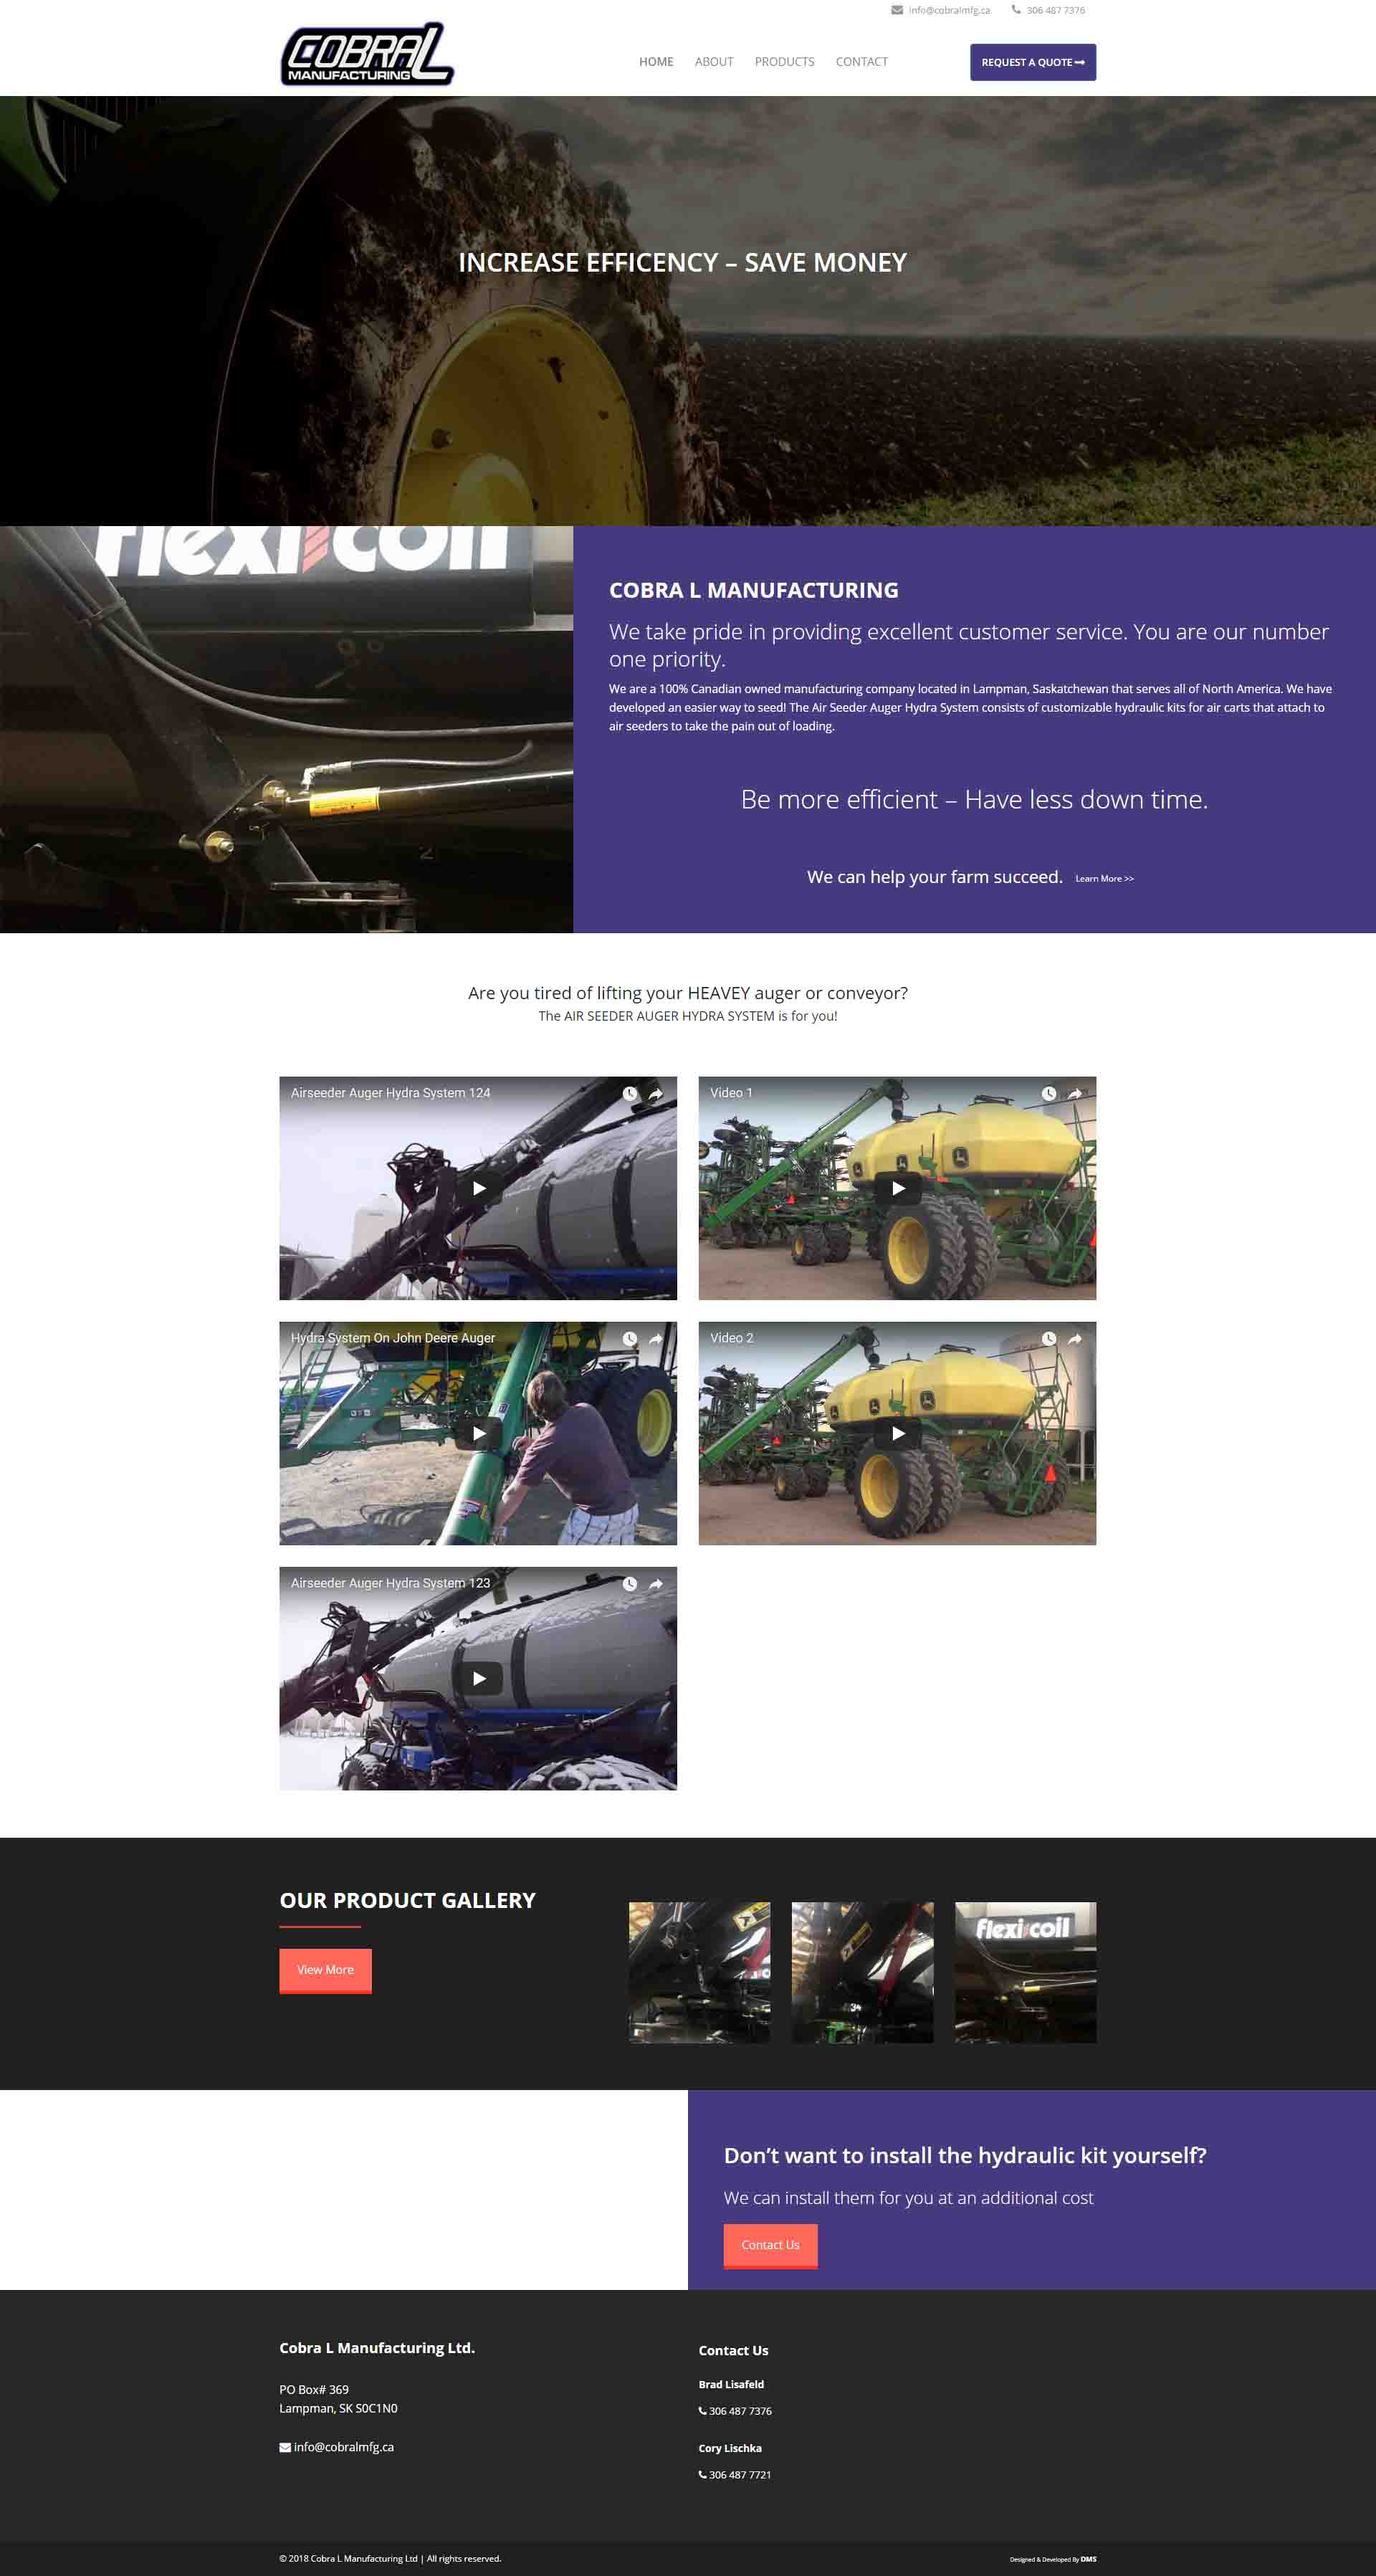 DMS Services Website Portfolio - Cobra L Manufacturing Ltd.